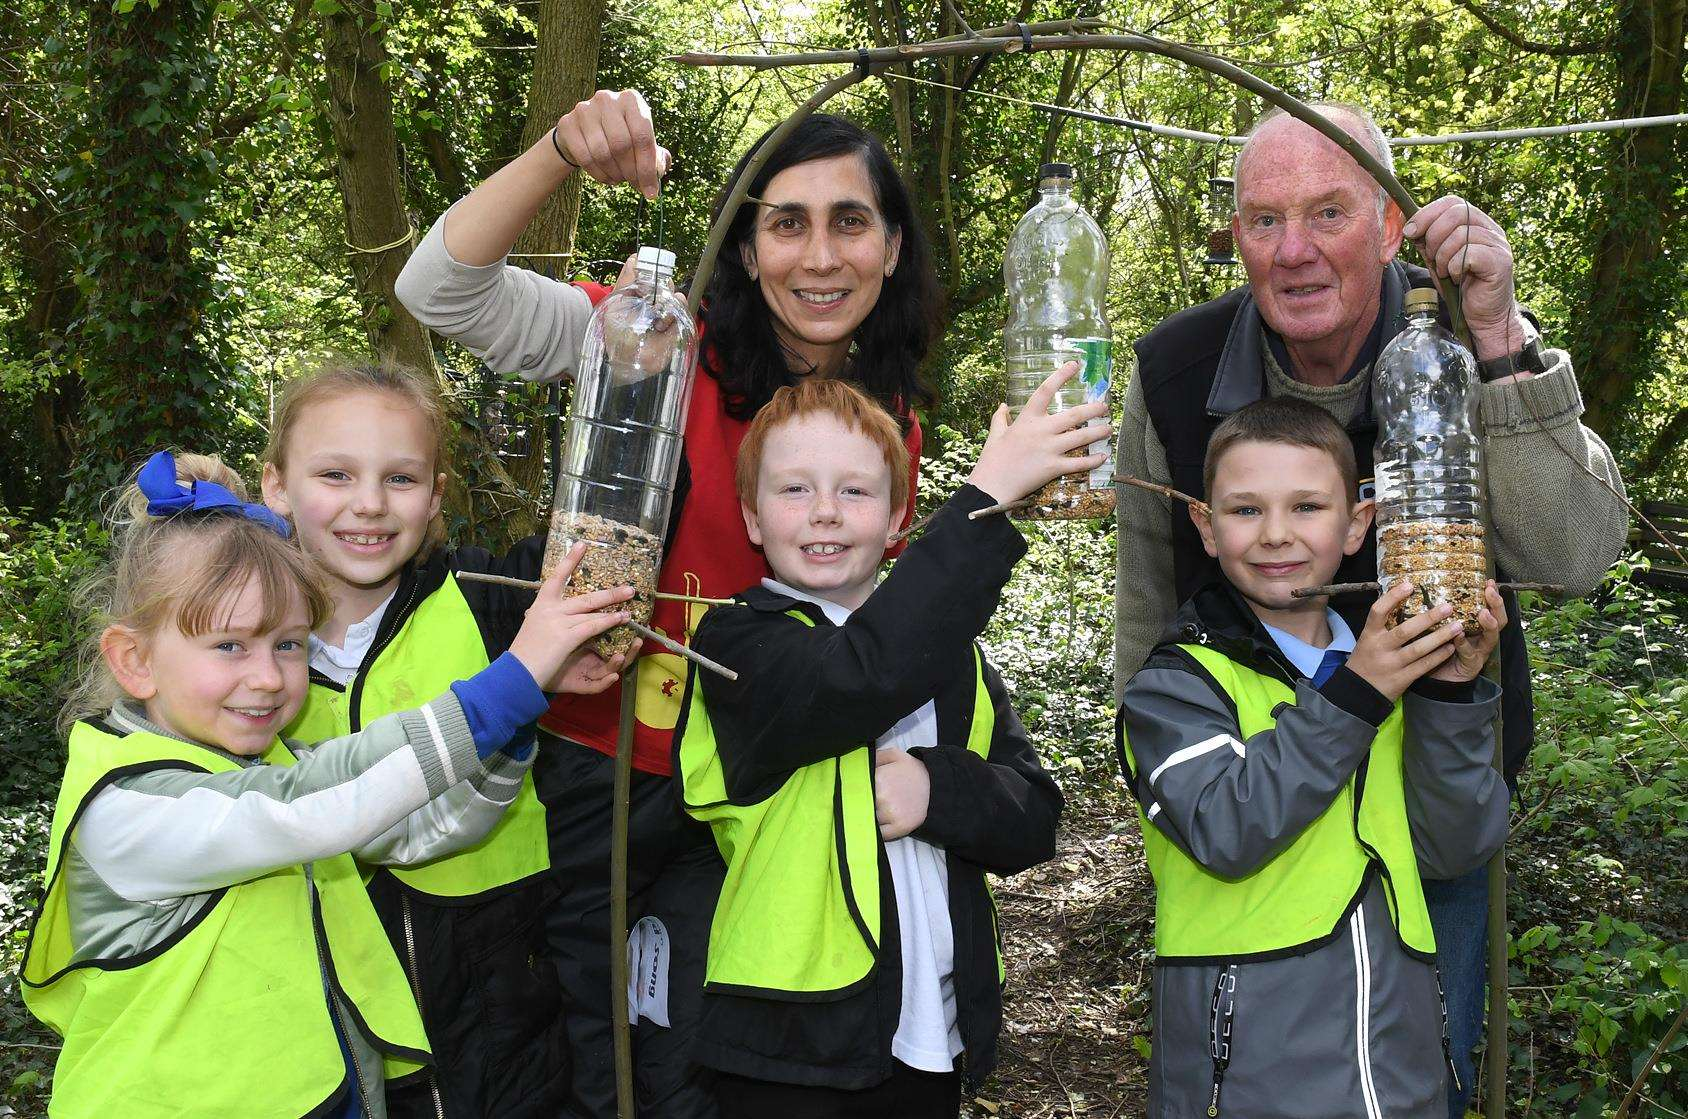 From left, Evie-Mae McRoberts, 7; Megan Fox, 7; Sim Duhra, of Sustrans; Murphy Holland, 8; Mr Roy Fletcher; and Max Lane, 8, hang bird feeders they made. 250418DD6-1